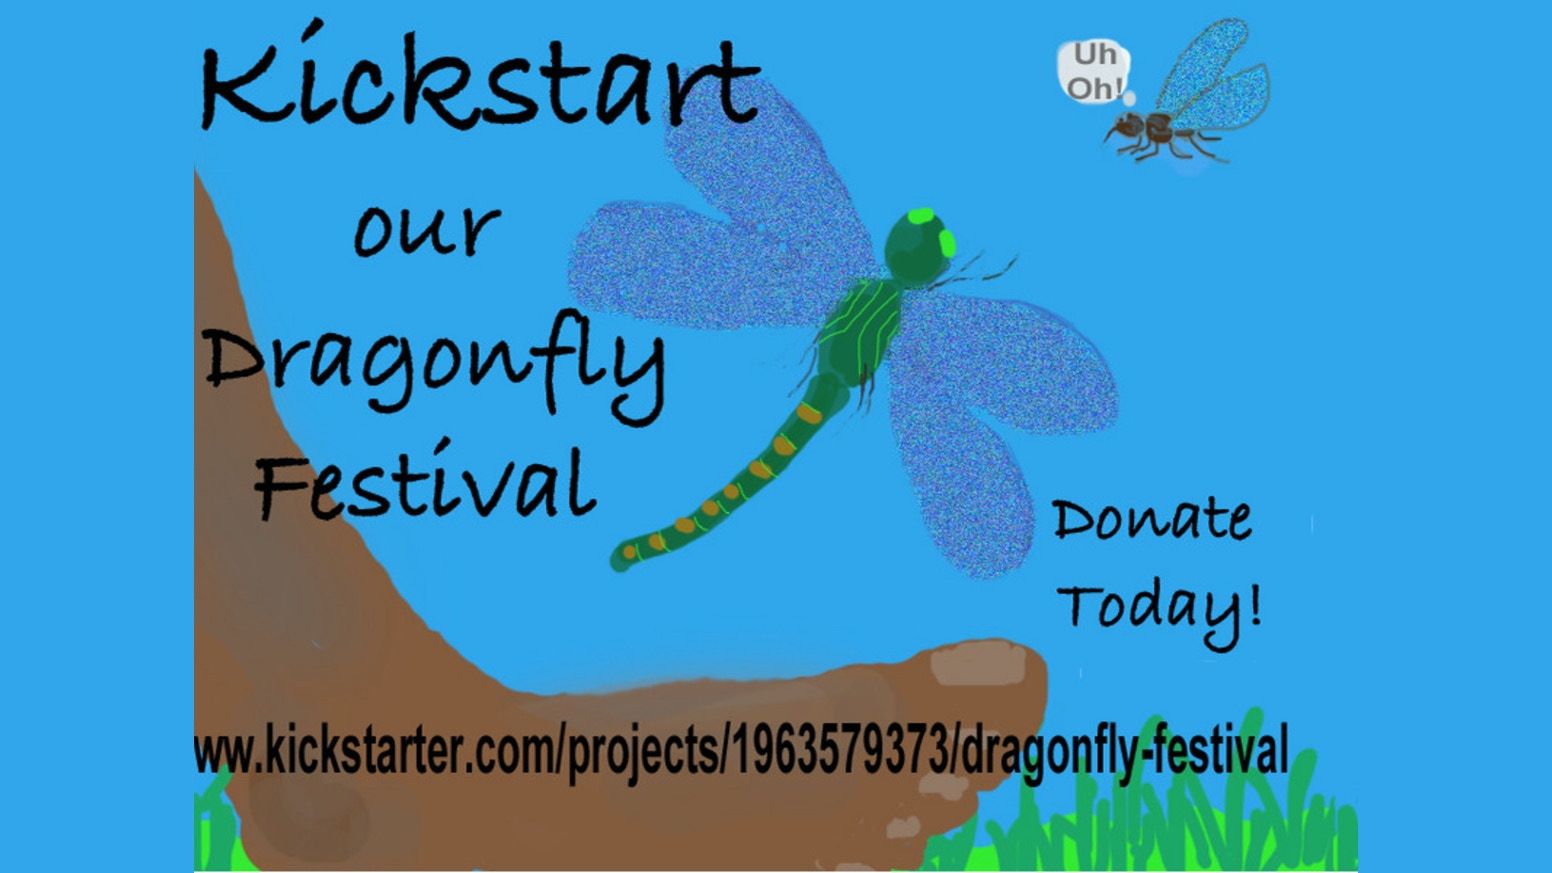 Dragonfly arts and crafts - A Free Outdoor Arts Celebration With Live Music Drama Food Crafts For Kids Dance Environmental Education And Dragonfly Lanterns